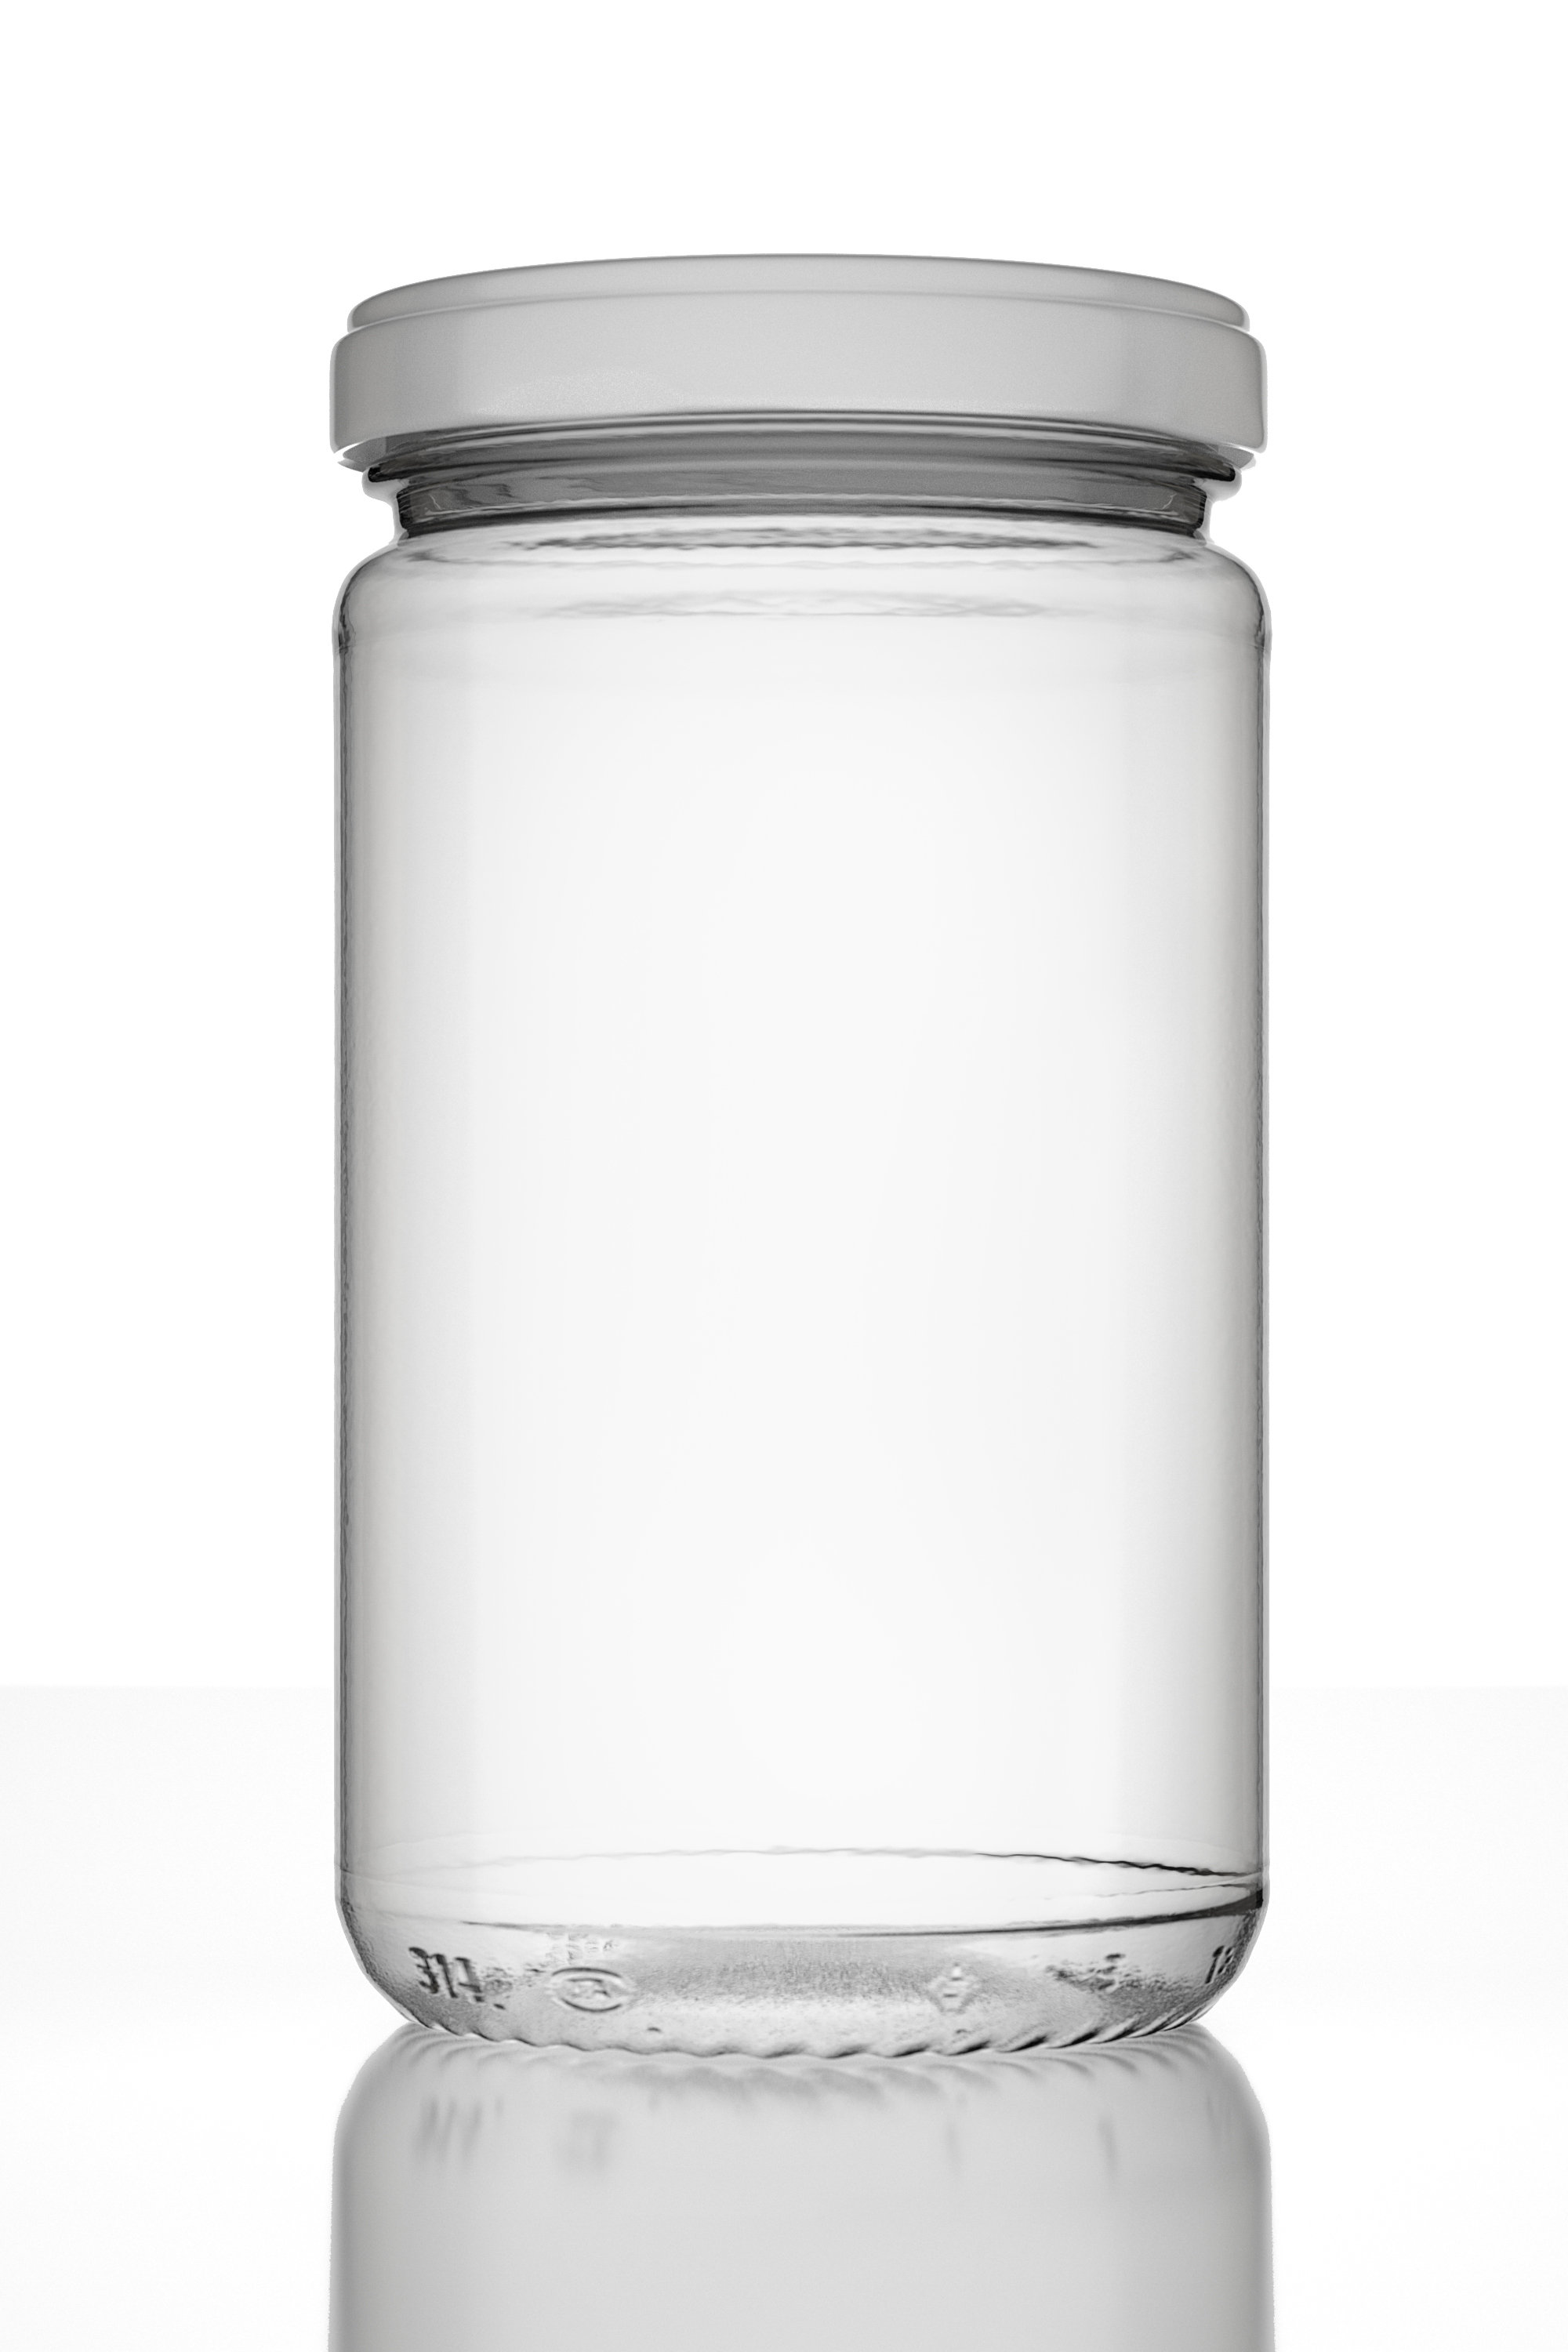 Photorealistic Empty Jar with Lid and Lab - 3DOcean Previewer: 3docean.net/theme_previews/5102362-photorealistic-empty-jar-with...